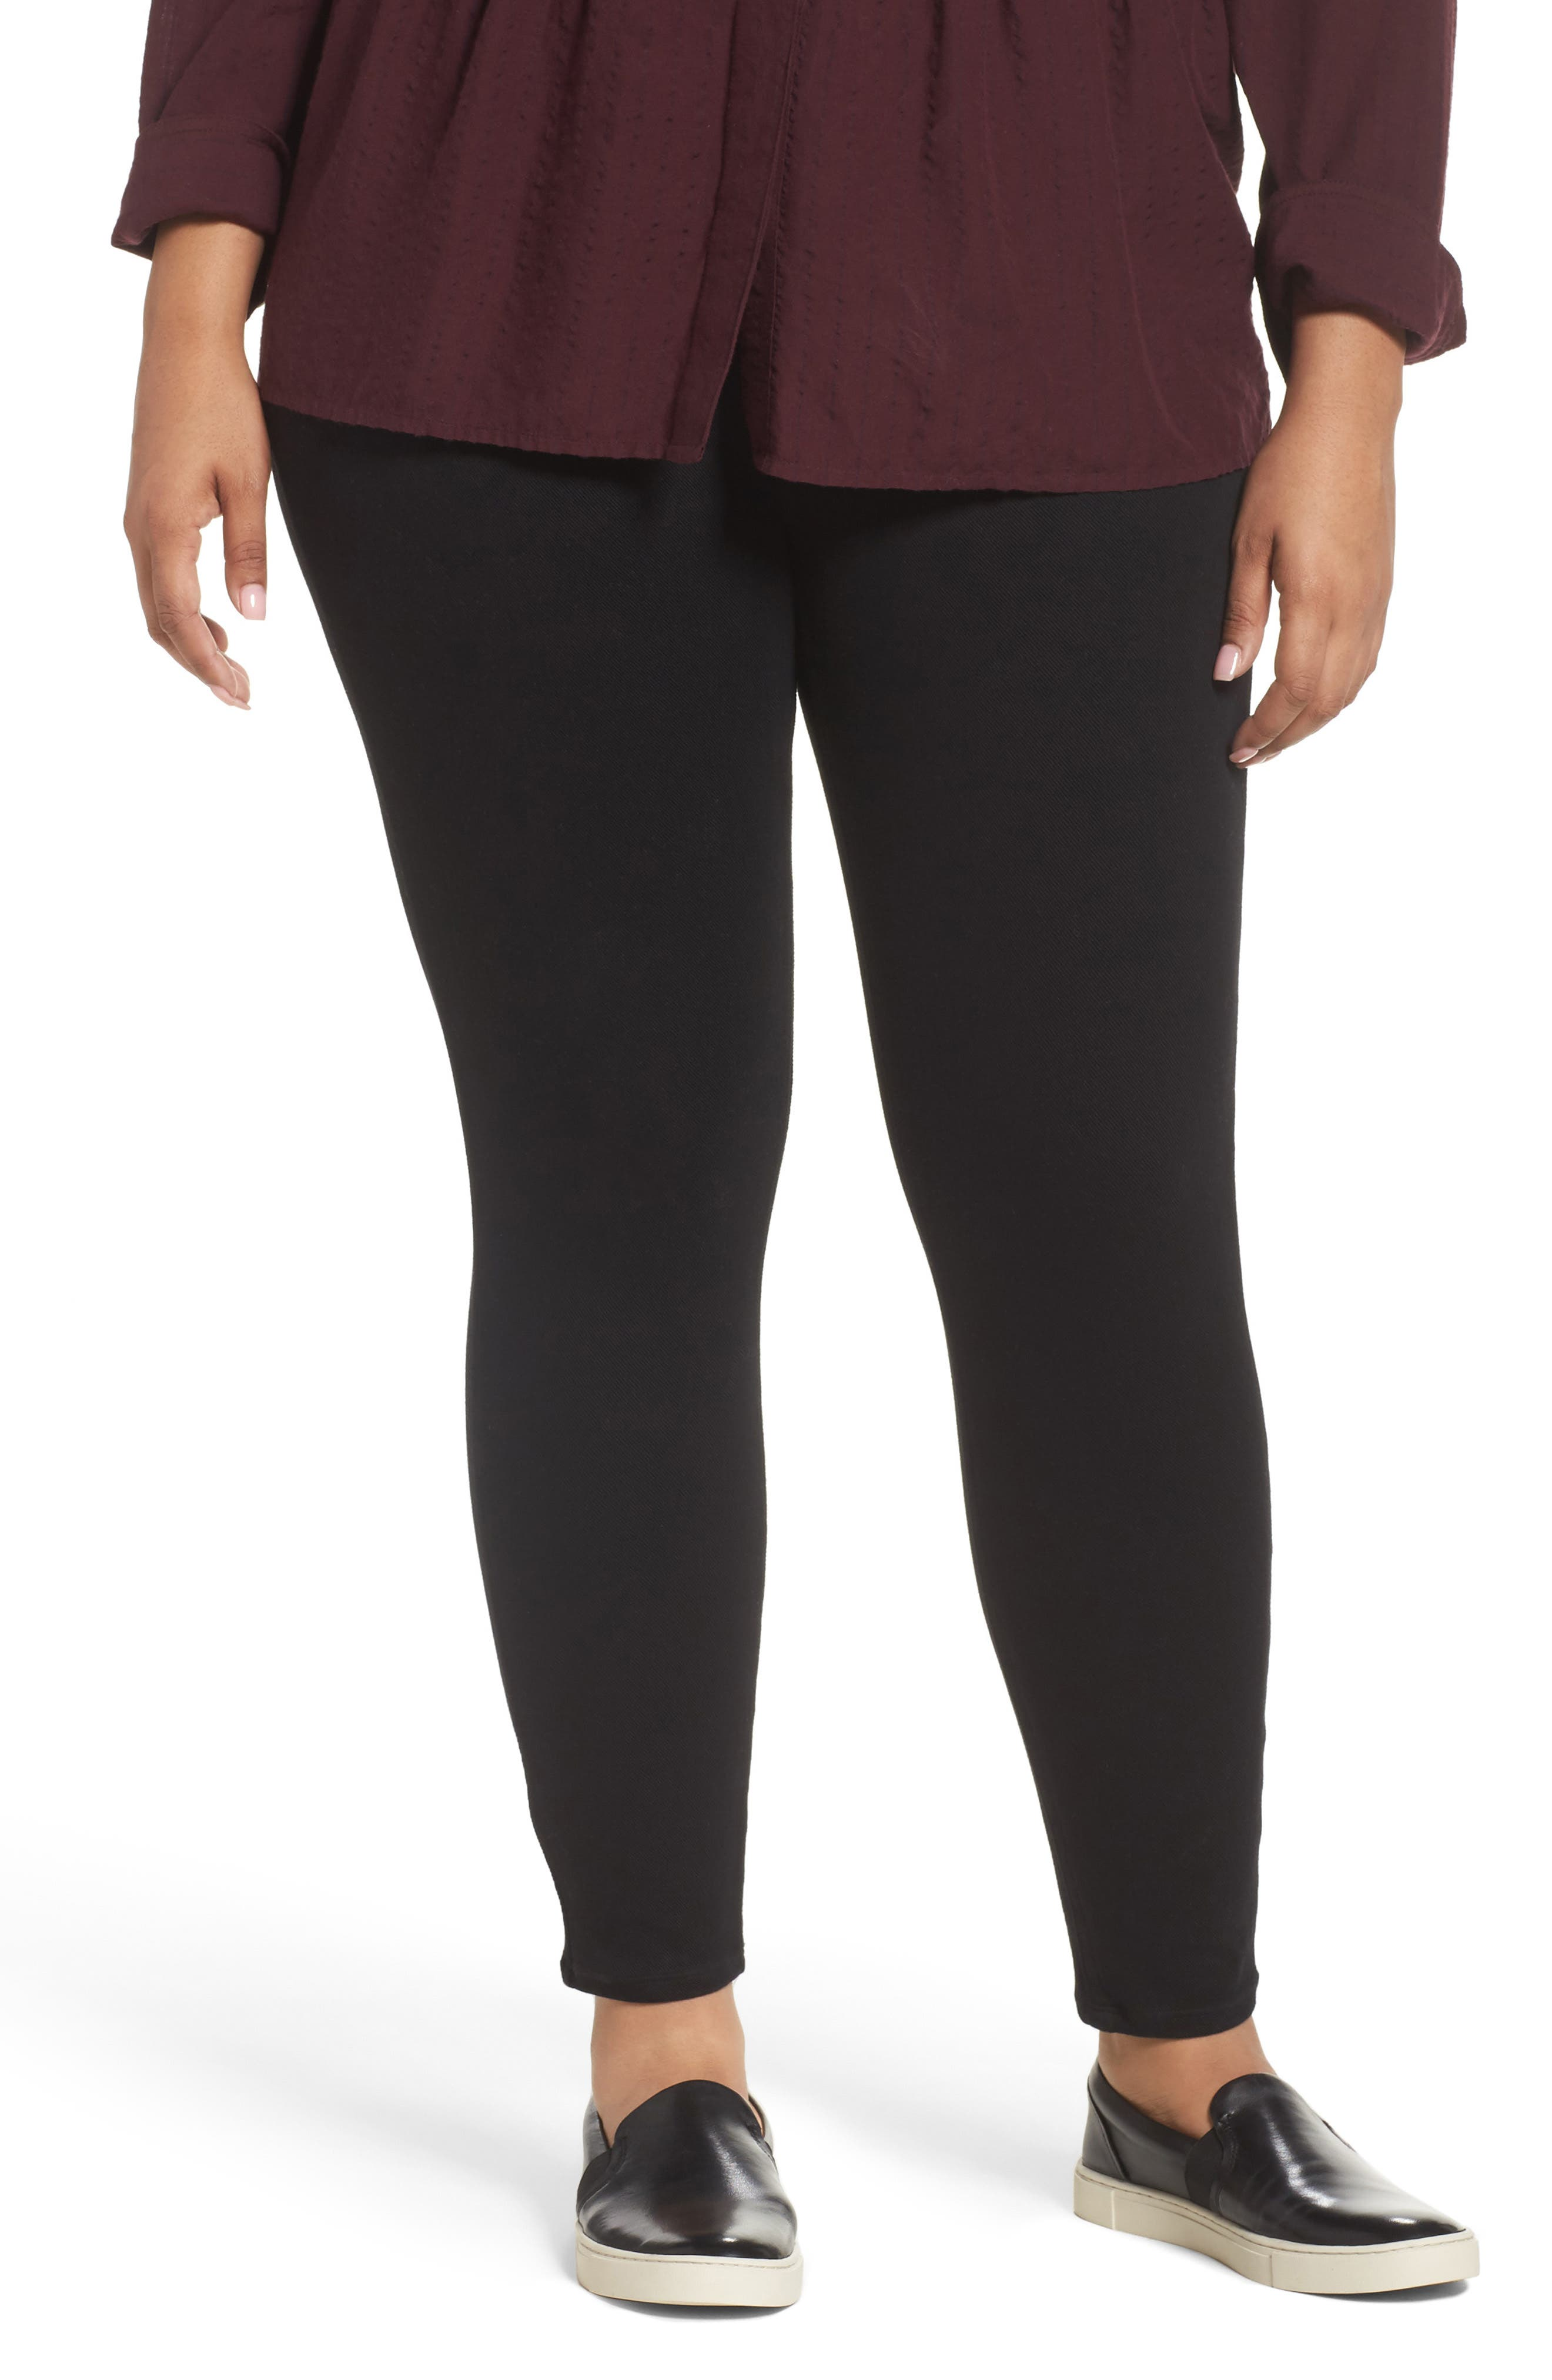 Alternate Image 1 Selected - SPANX® Jean-ish Leggings (Plus Size)